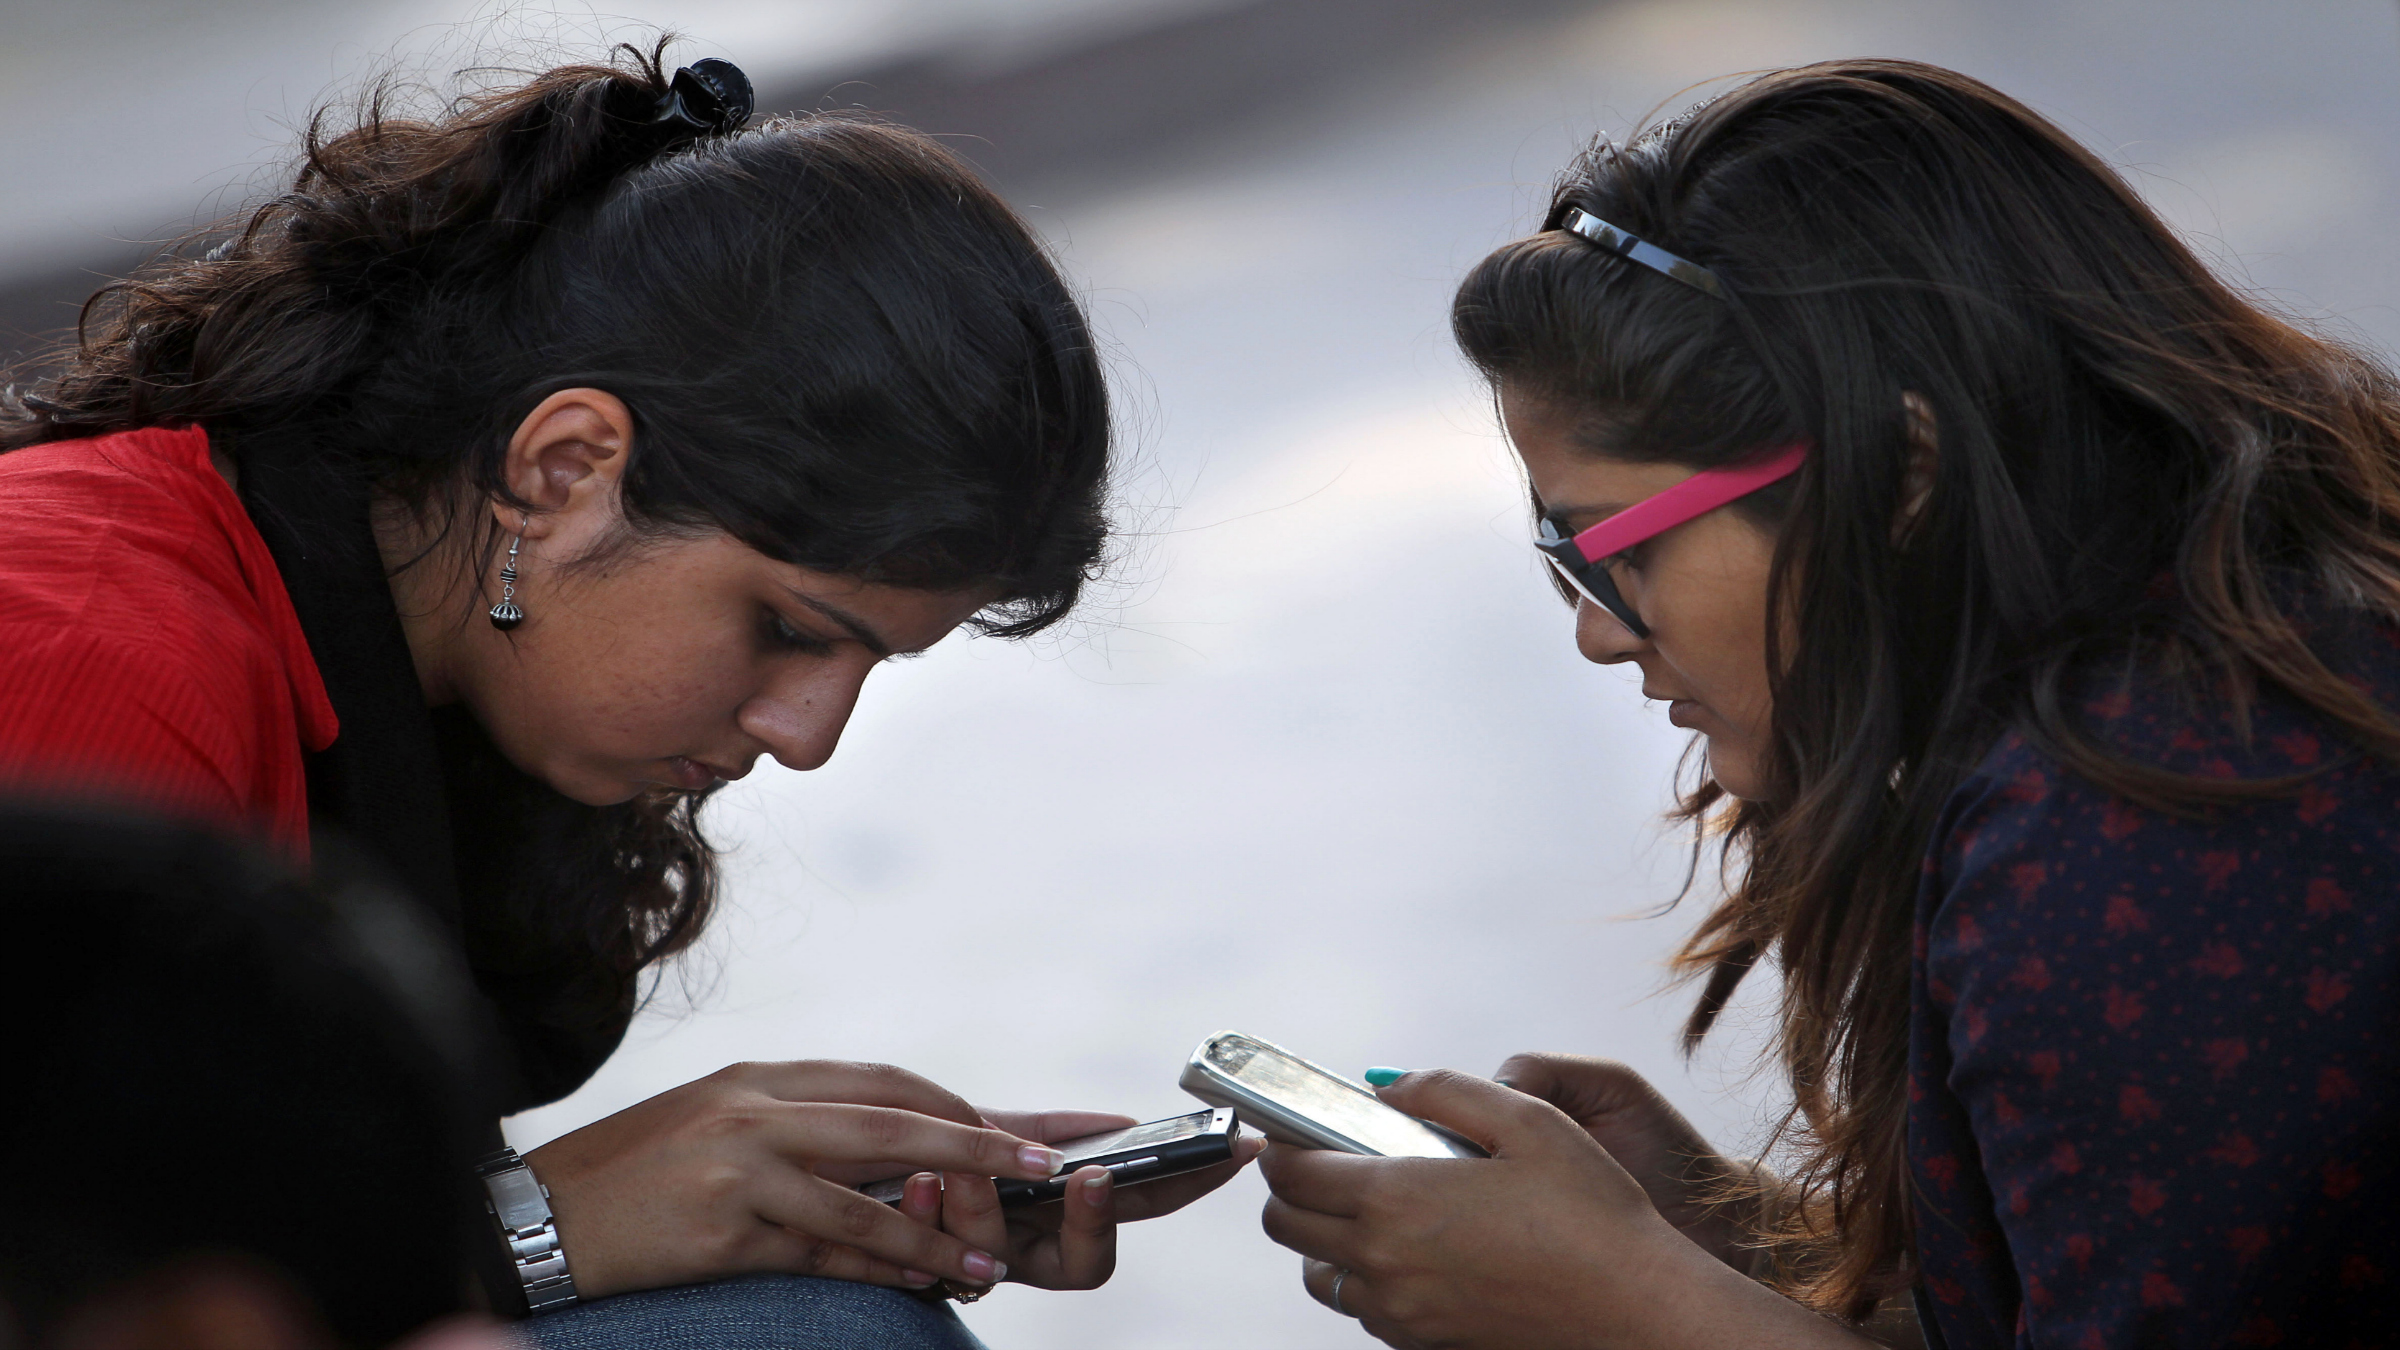 Indian girls engage with their mobile phones in New Delhi, India, Thursday, Feb. 28, 2013. Indian Finance minister Palaniappan Chidambaram unveiled a national budget with a promise to put Asia's third largest economy back on a path of high growth and to check runaway inflation and the fiscal deficit. He hiked taxes on imported luxury cars, high-end motorcycles and yachts, all of which have become symbols of affluence among India's upper classes and said mobile phones and SUVs would cost more, as would dining at expensive restaurants. (AP Photo/Tsering Topgyal)